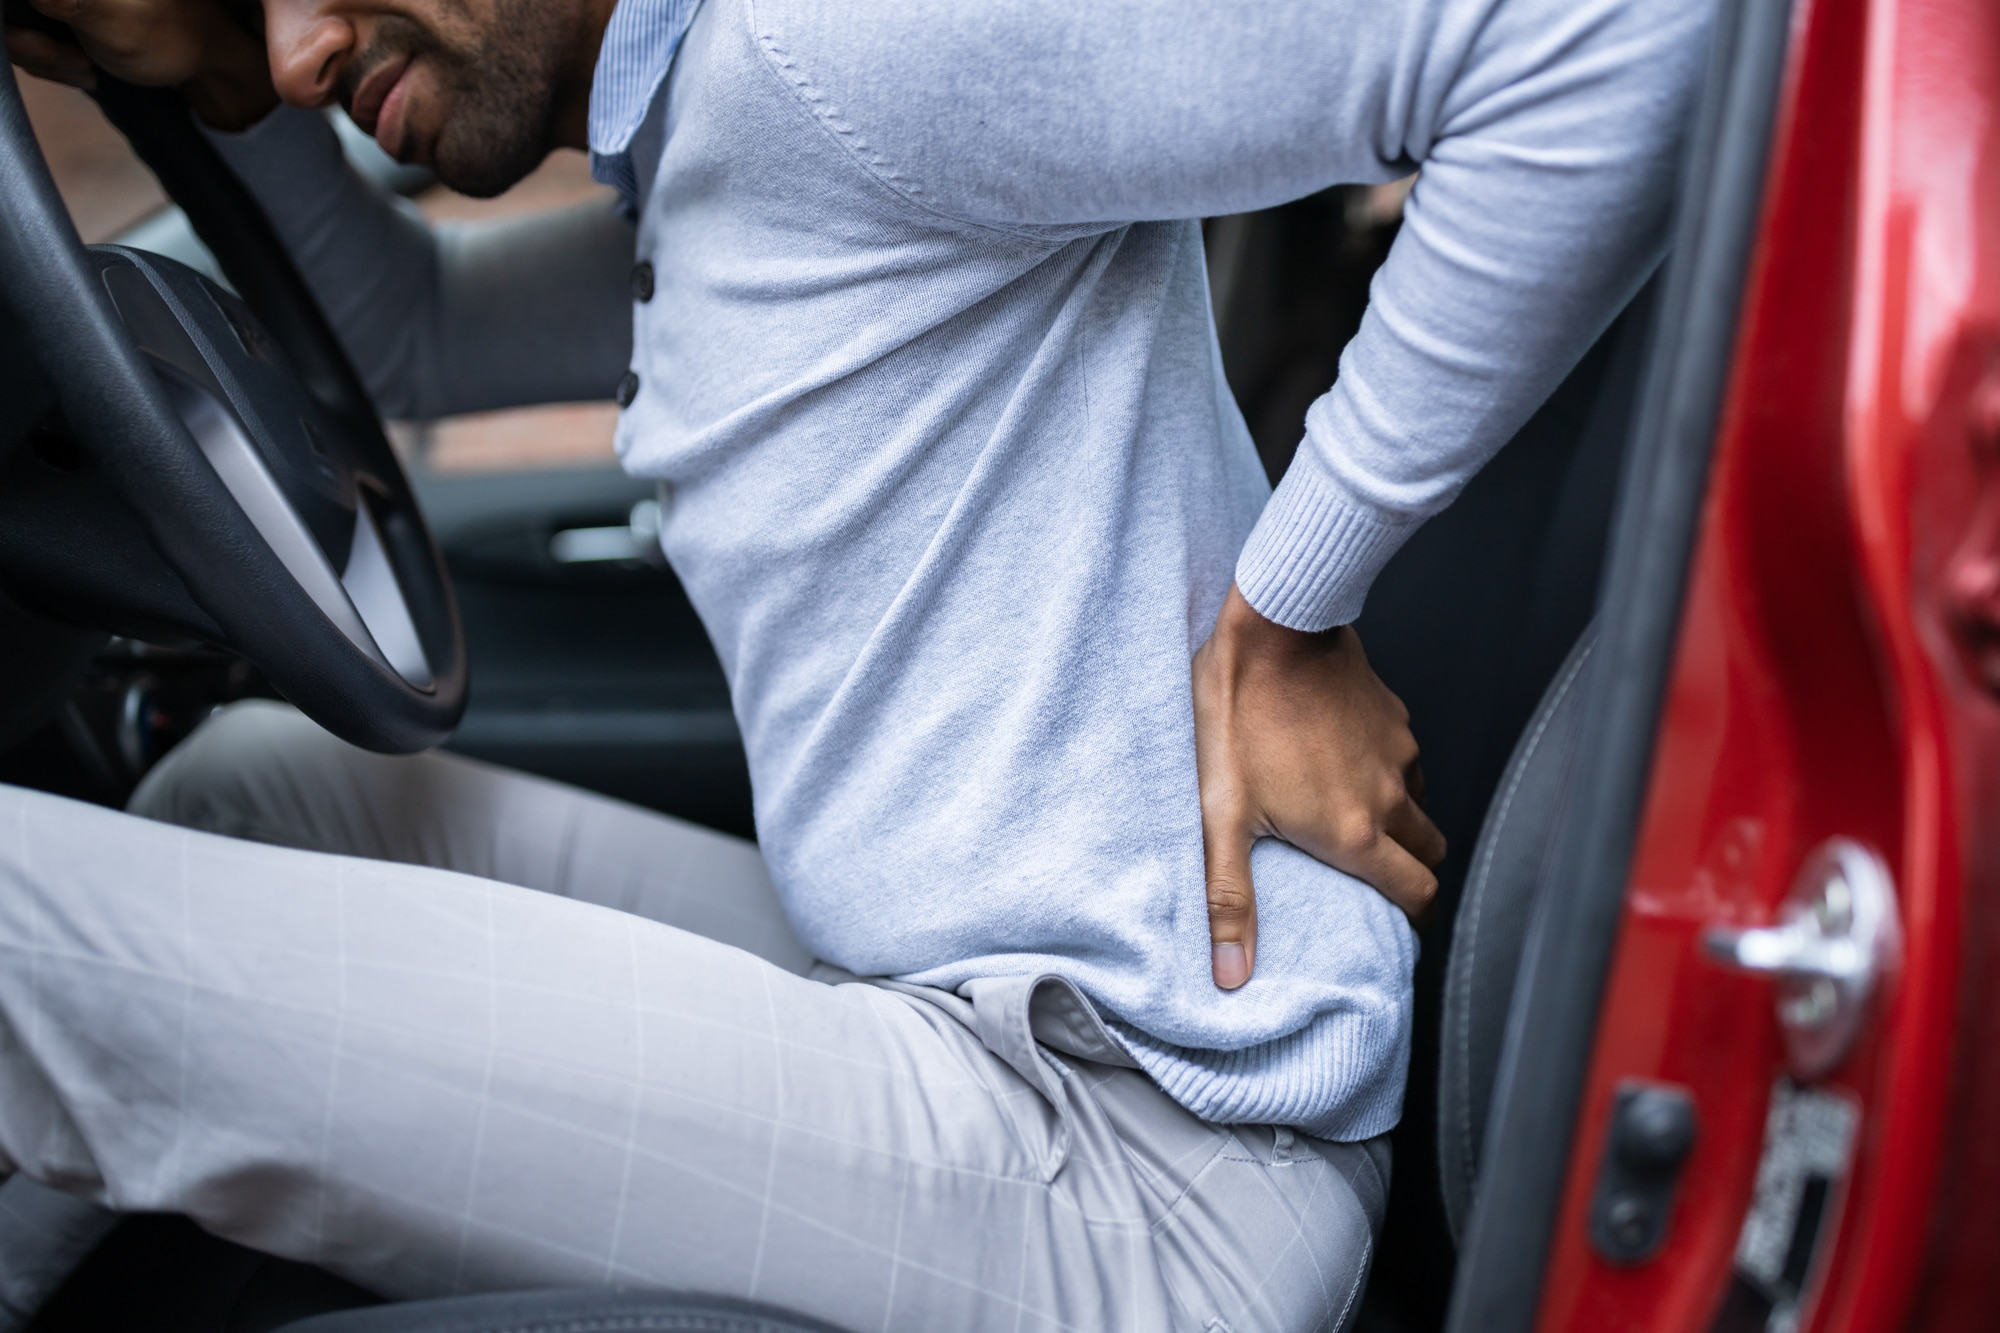 Driver of car holding back in pain